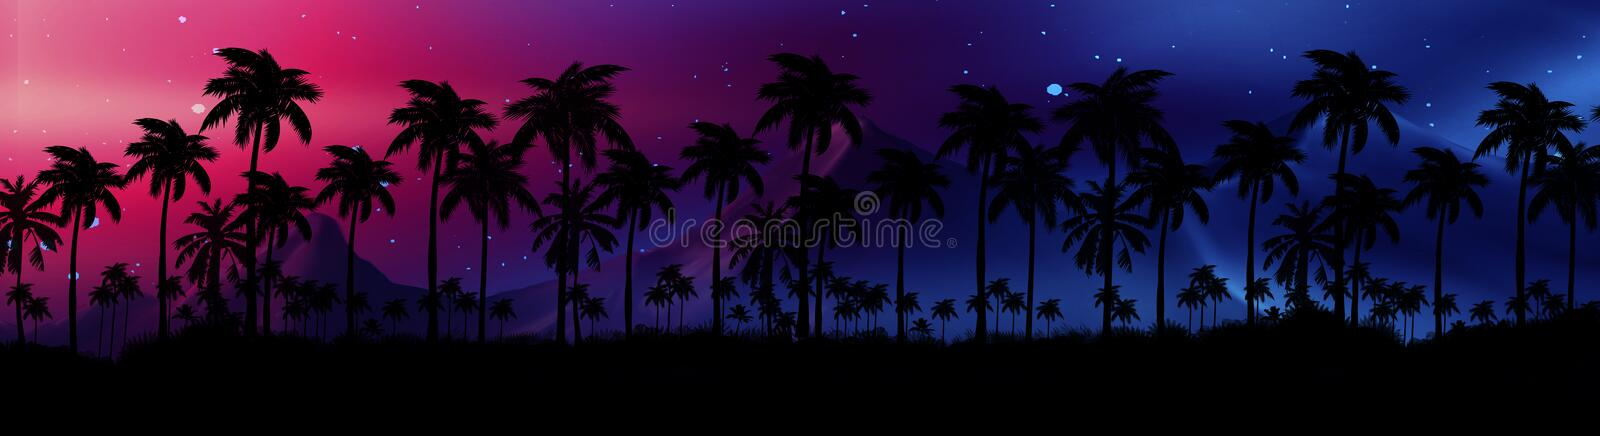 Night landscape with stars, sunset, stars. Silhouette coconut palm trees. Vintage tone. Lights of the night city, neon, coast royalty free illustration